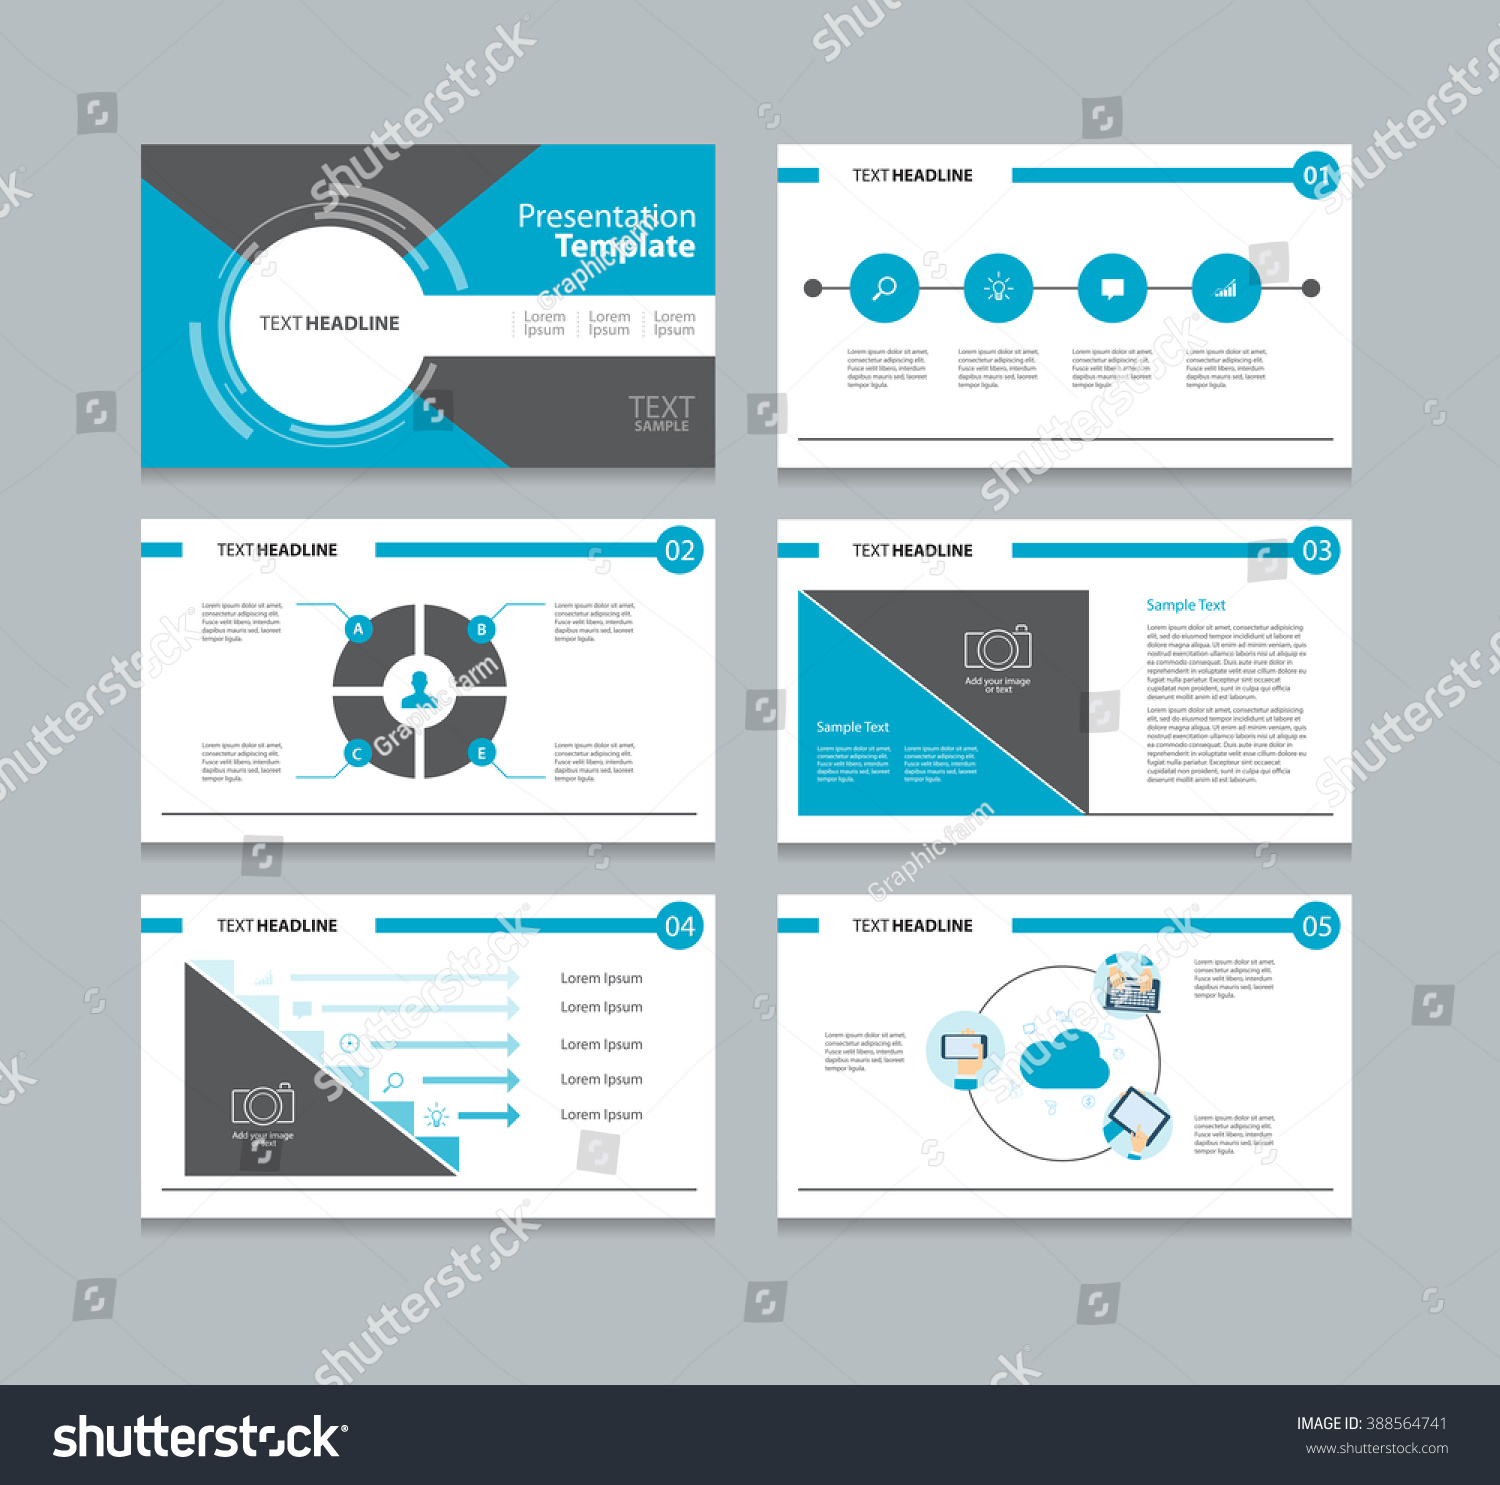 royalty free business presentation slide backgrounds 388564741